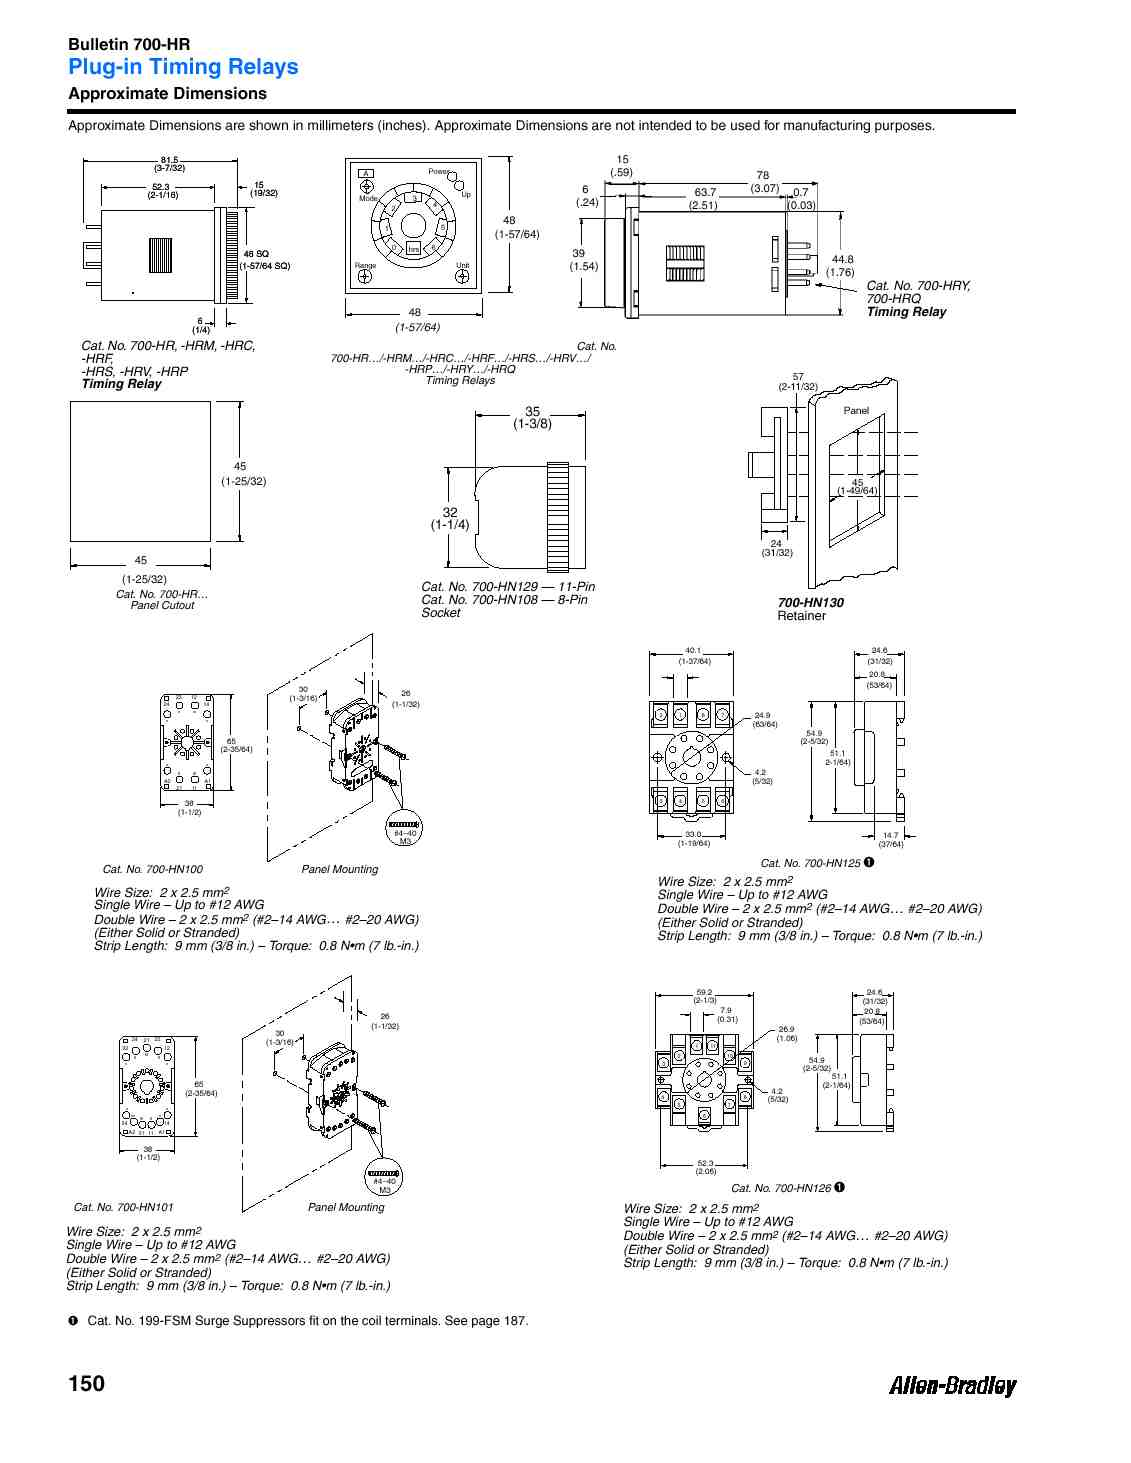 allen bradley safety contactor wiring diagram. Black Bedroom Furniture Sets. Home Design Ideas